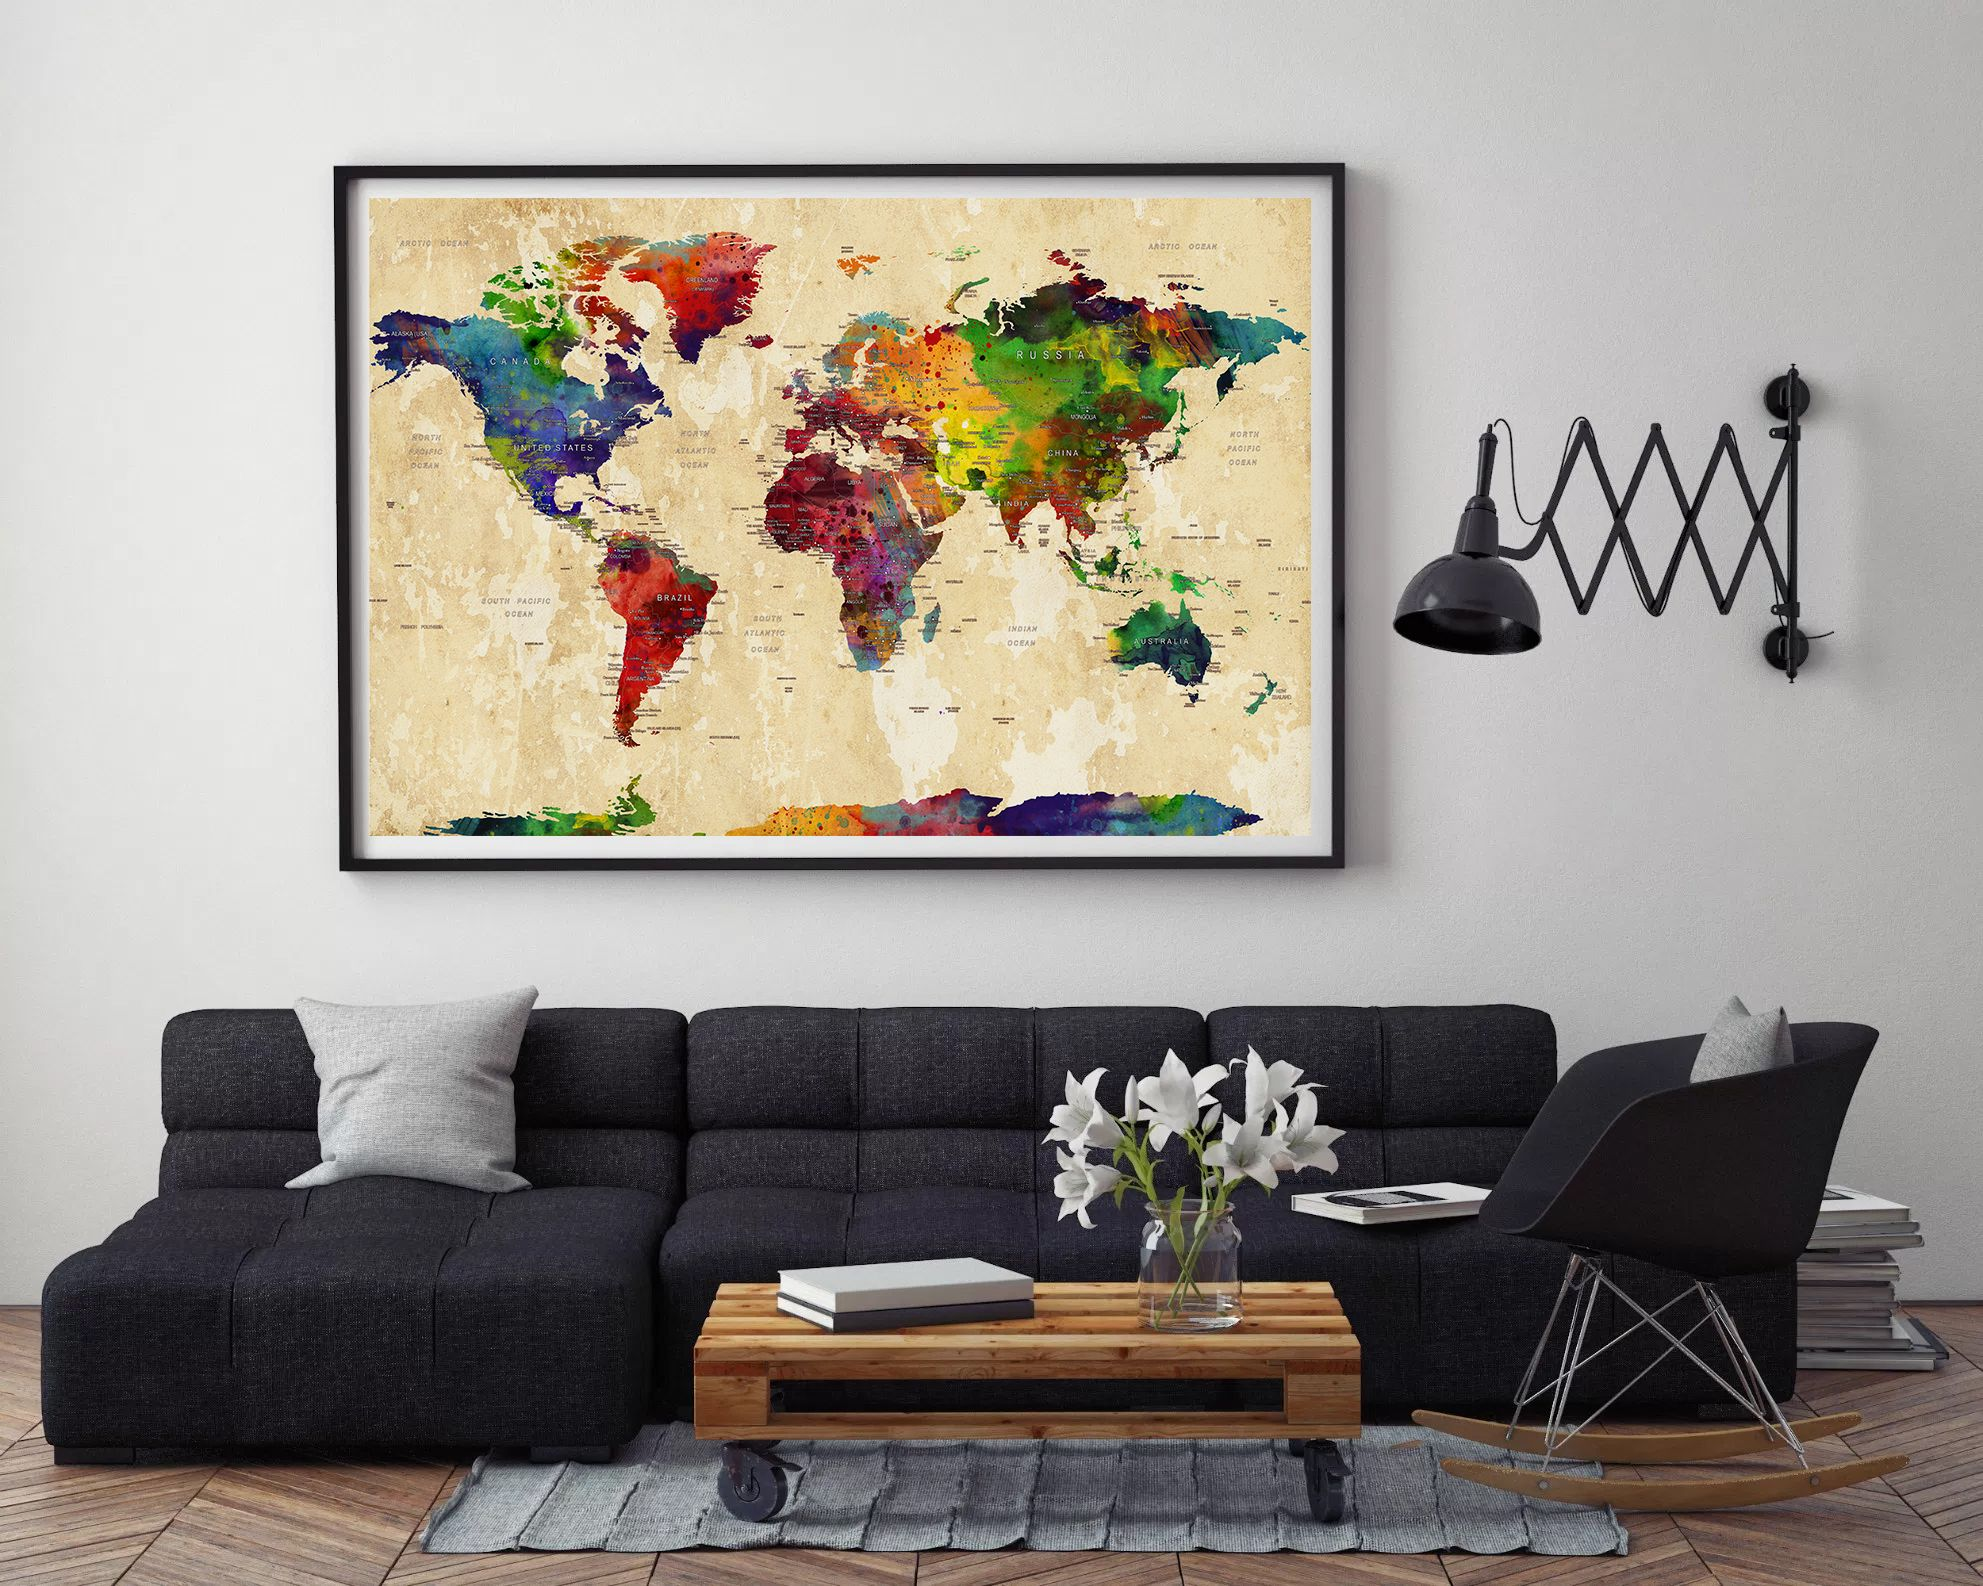 World map large world map watercolor world map world map art world map large world map watercolor world map world map art wall art world map poster home decor map of the world art travel l25 gumiabroncs Images